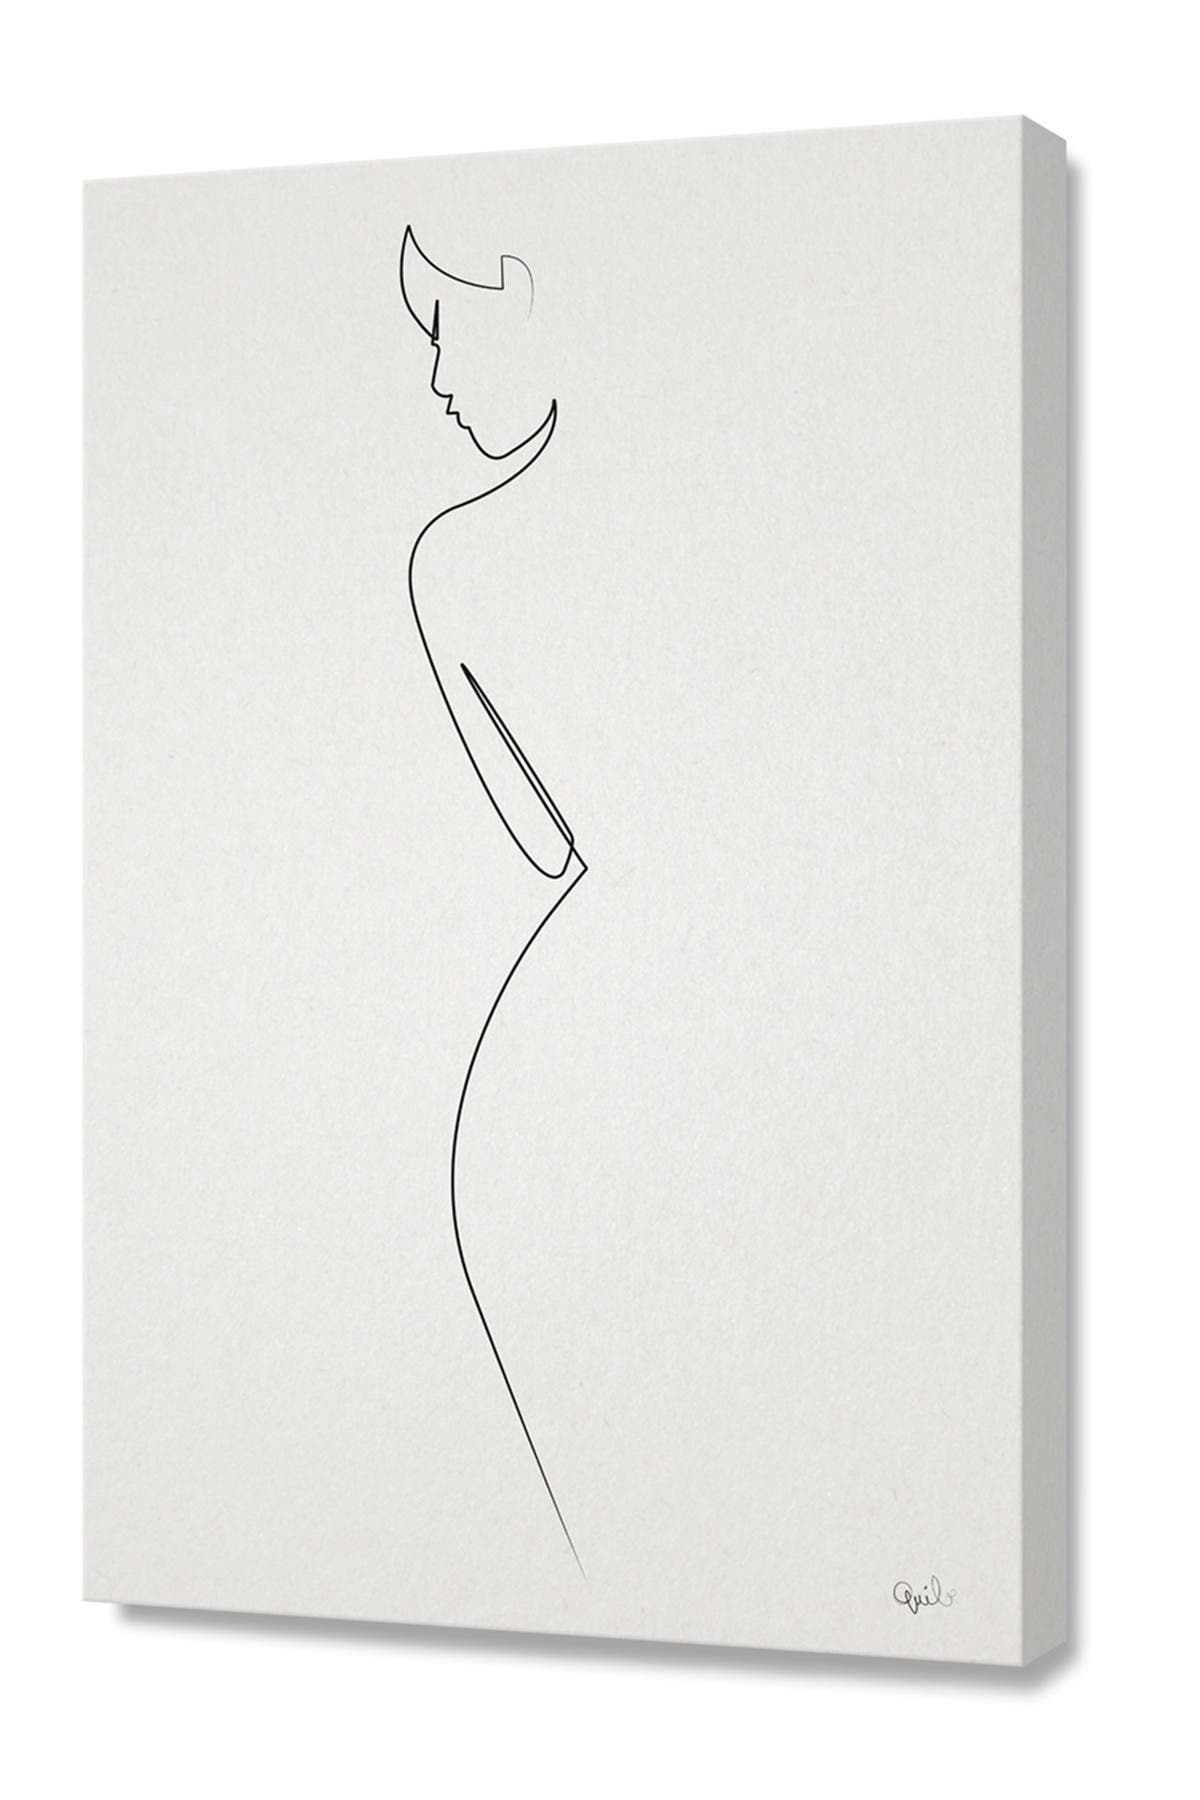 Image of Curioos Small One Line Nude by Quibe